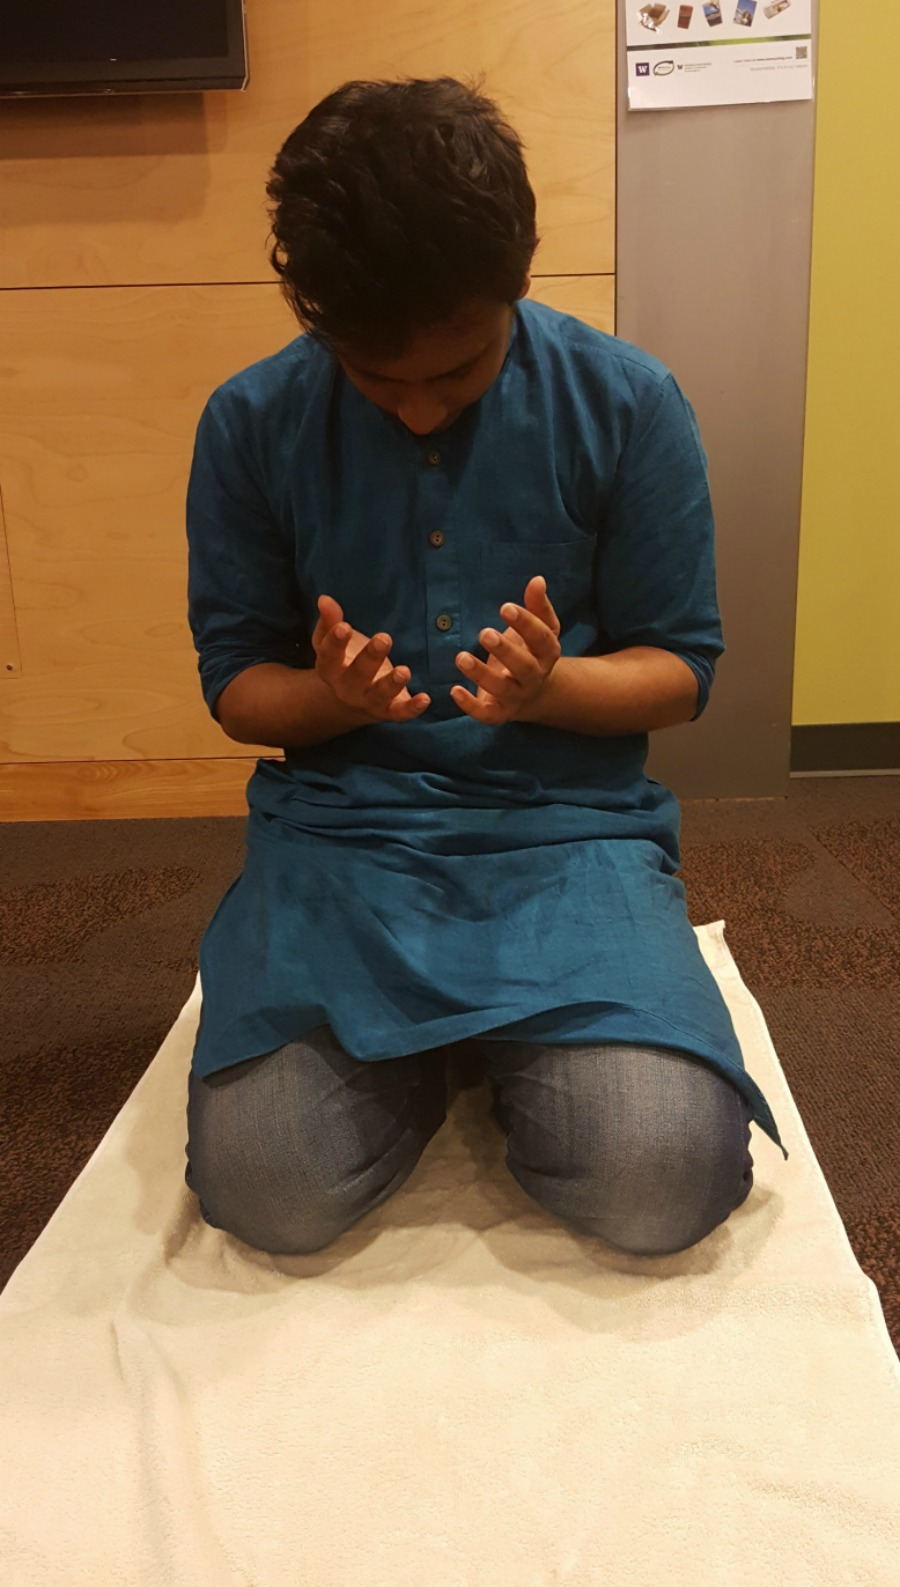 Rafsanul Hoque finishing up his salaah (Photo by Faizah Aditya Aziz)